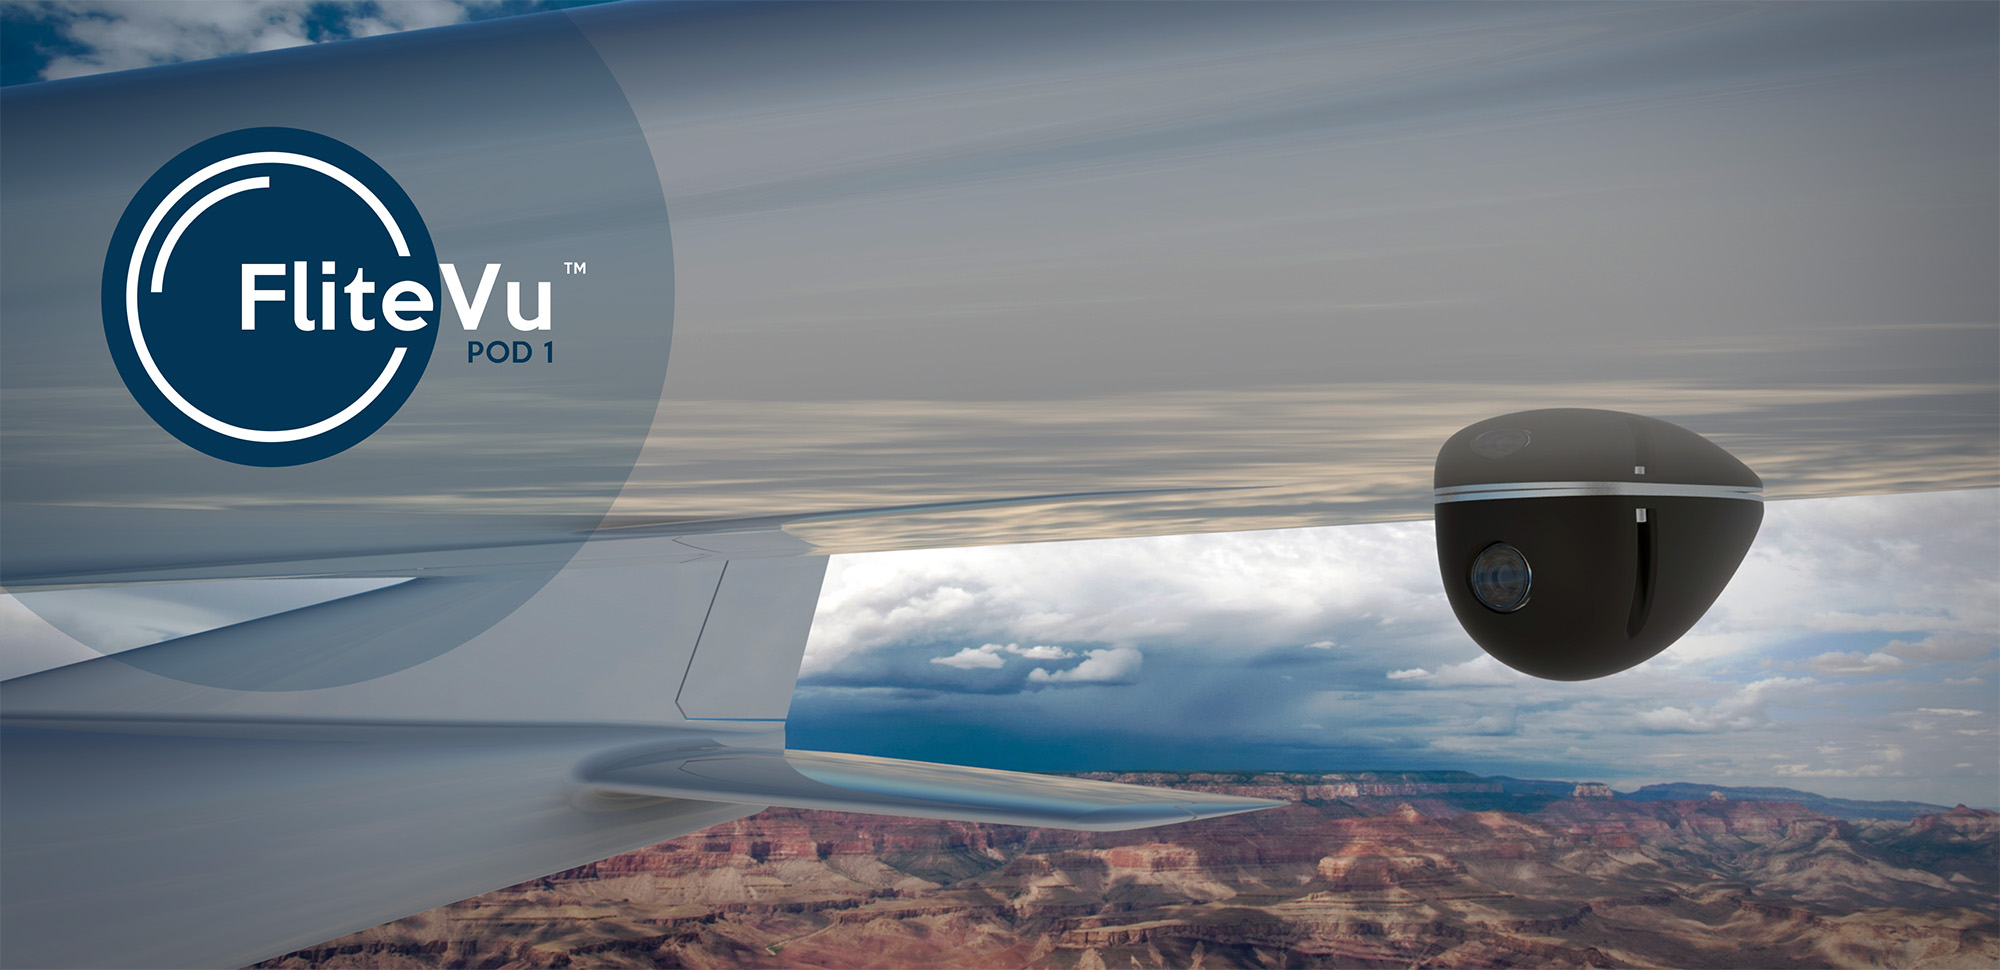 FliteVu - High resolution digital camera in aerodynamic pod for aeronautical applications